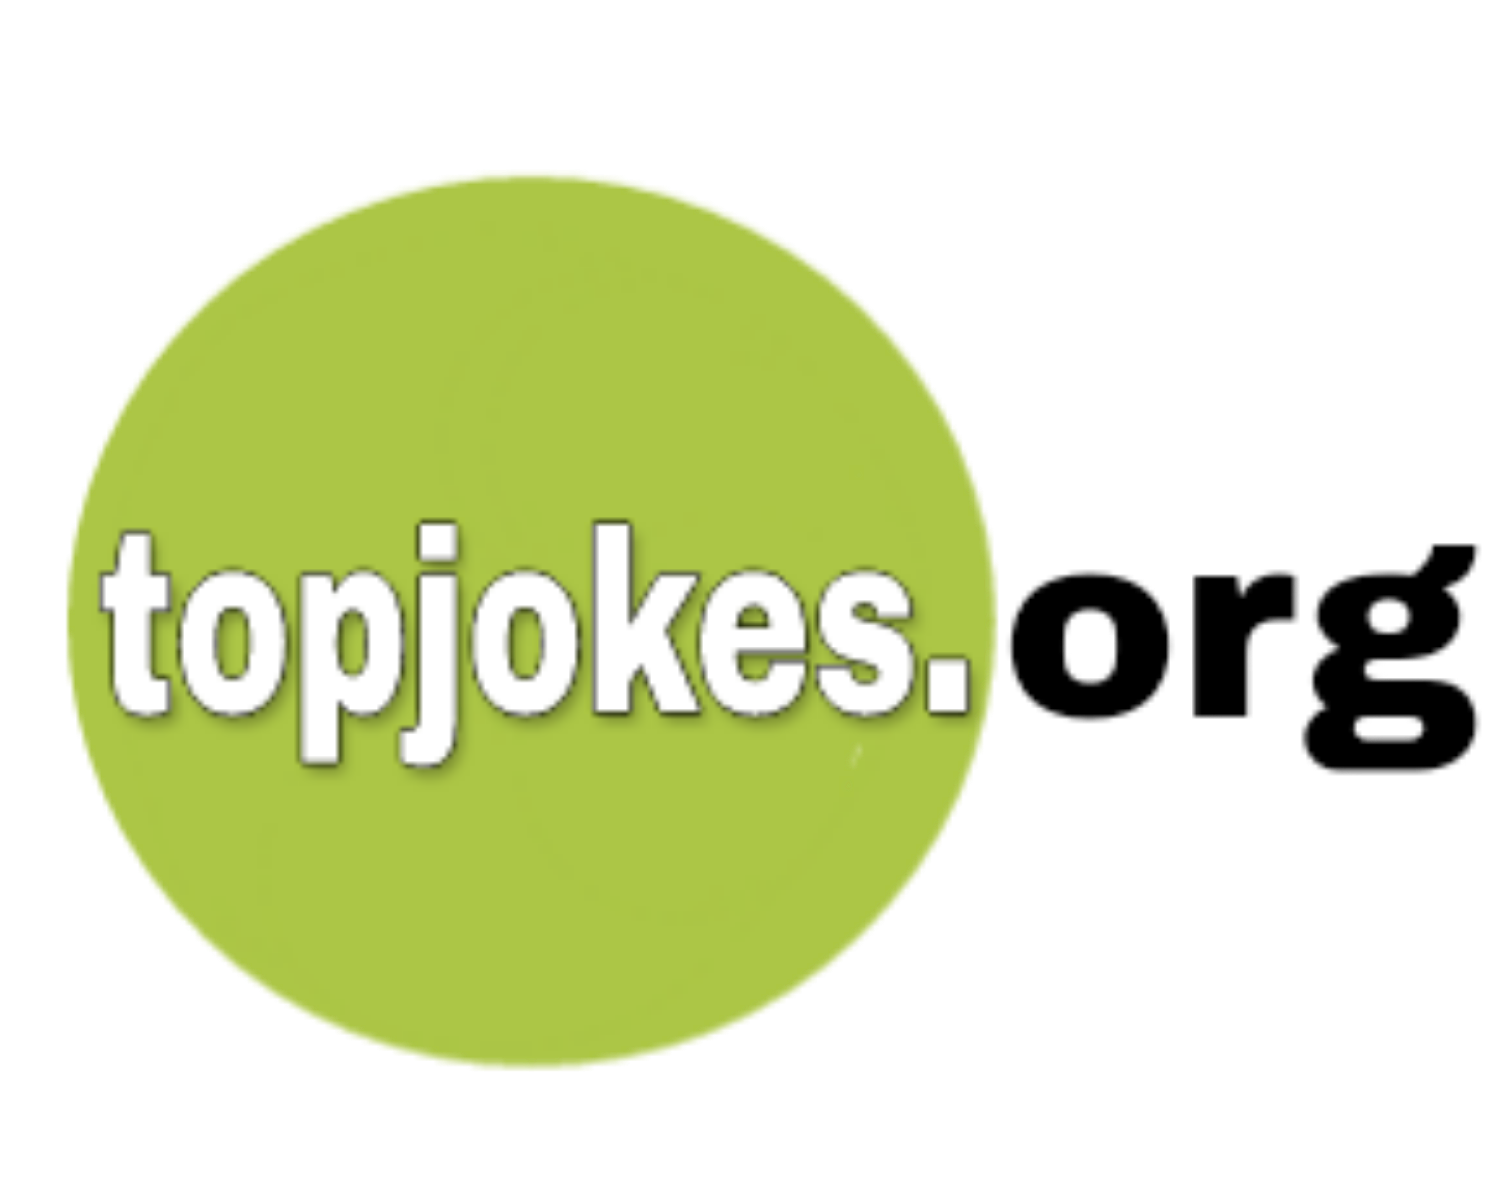 topjokes.org - Funny Hindi and Punjabi Jokes